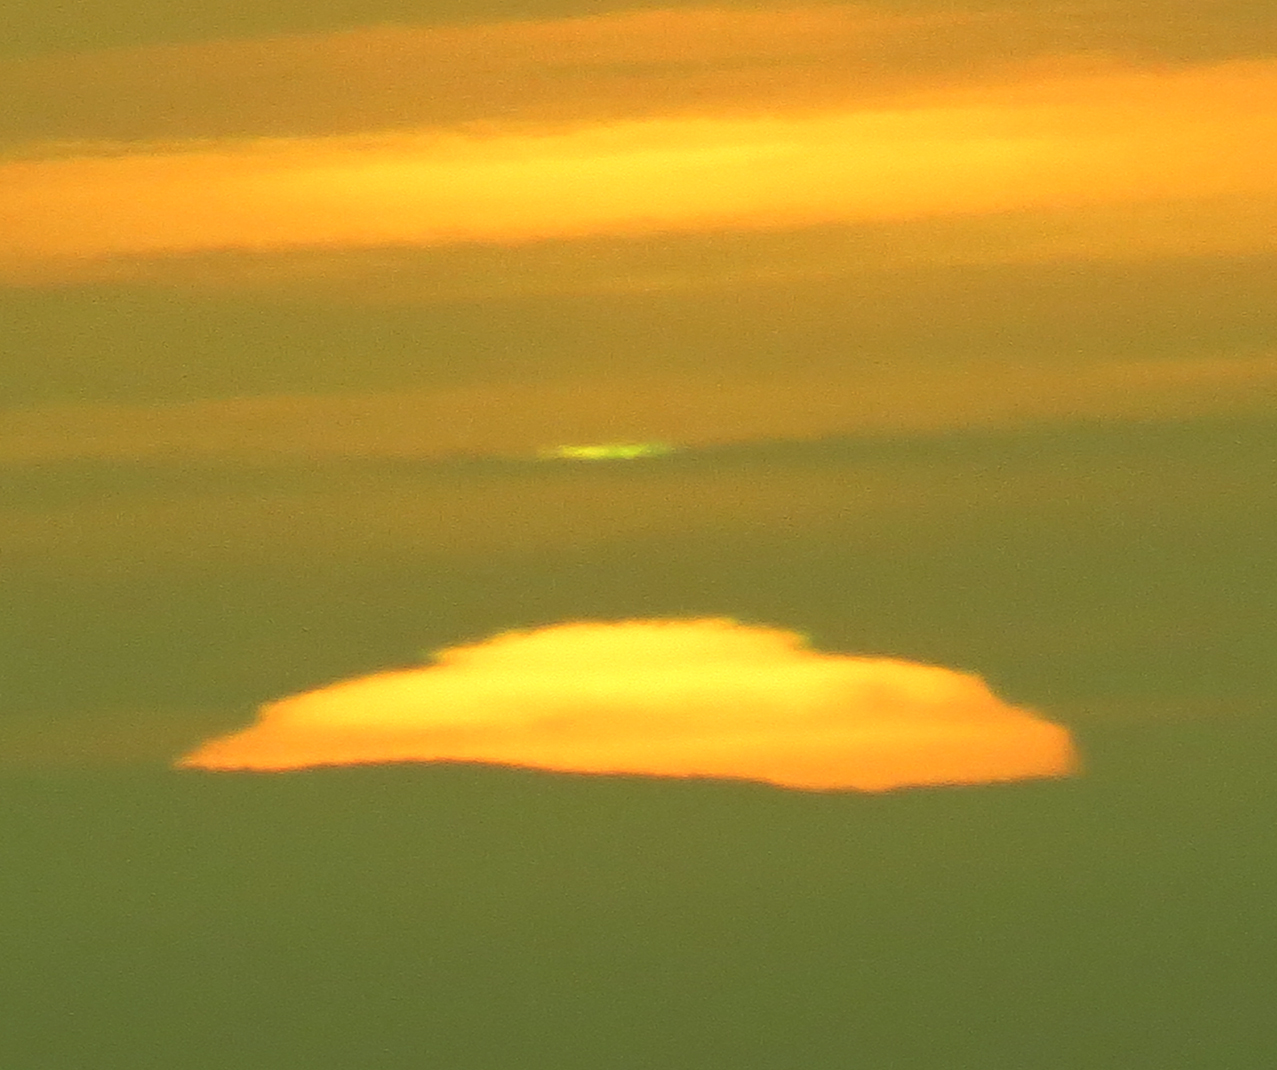 green flash, green flash photo, green flash weird sun photo, green flash over weird sun, green flash sun, green flash san francisco, Weird green flash over a sliced sun in San Francisco. Photo: Mila Zinkova, The green flash appears far away from the layered sun surface. Photo: Mila Zinkova